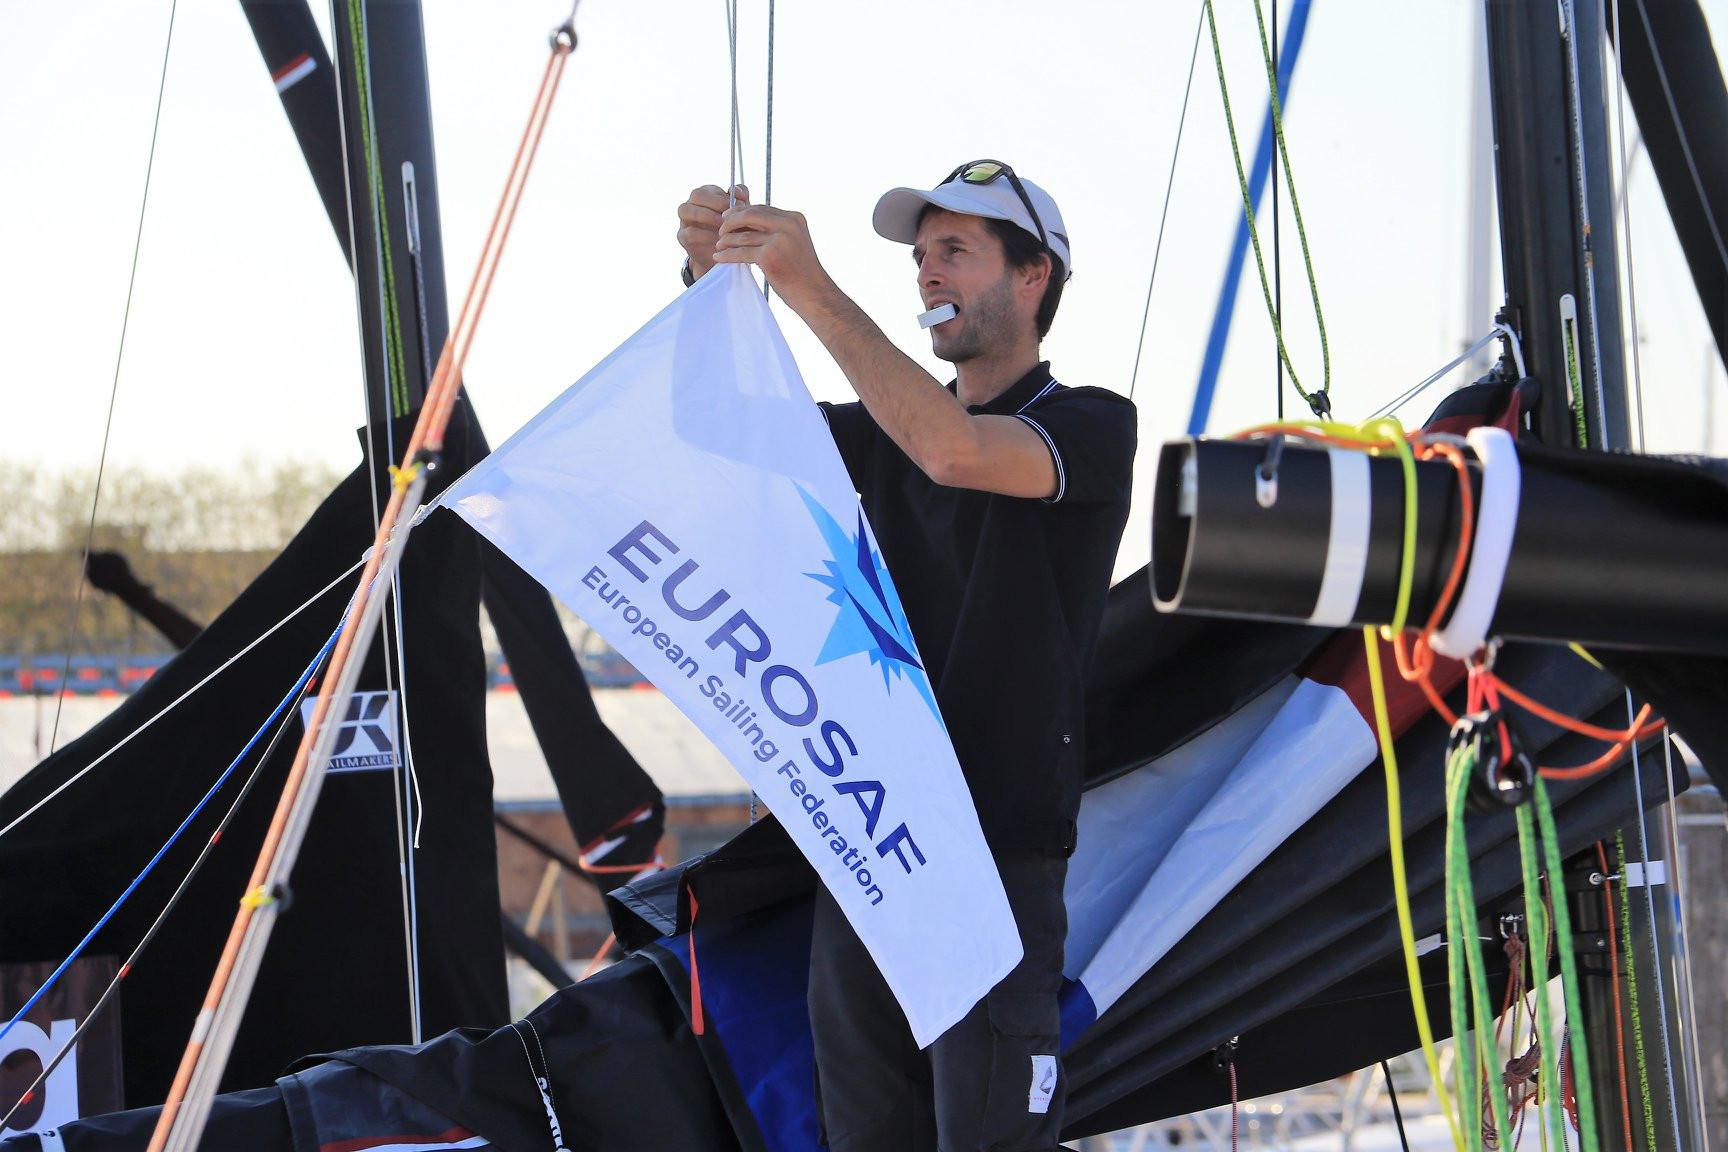 The in-port race on the opening day of the European Sailing Federation Mixed Offshore European Championship in Venice was cancelled due to poor weather conditions ©EUROSAF